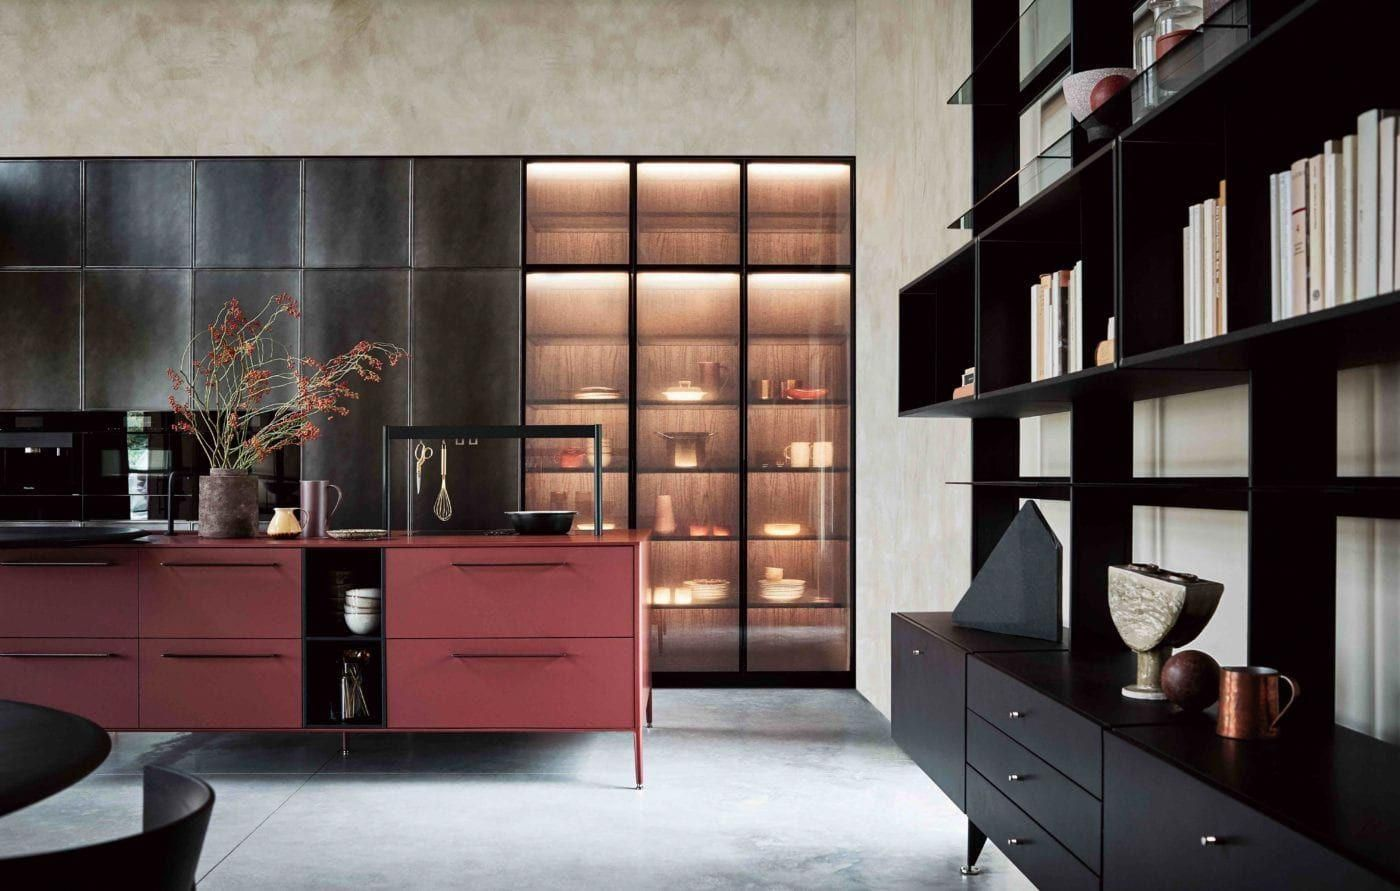 Astounding Photo Have A Look At Our Write Up For Even More Plans Rustickitchencabinets Kitchen Design Trends Italian Kitchen Cabinets Modern Kitchen Design